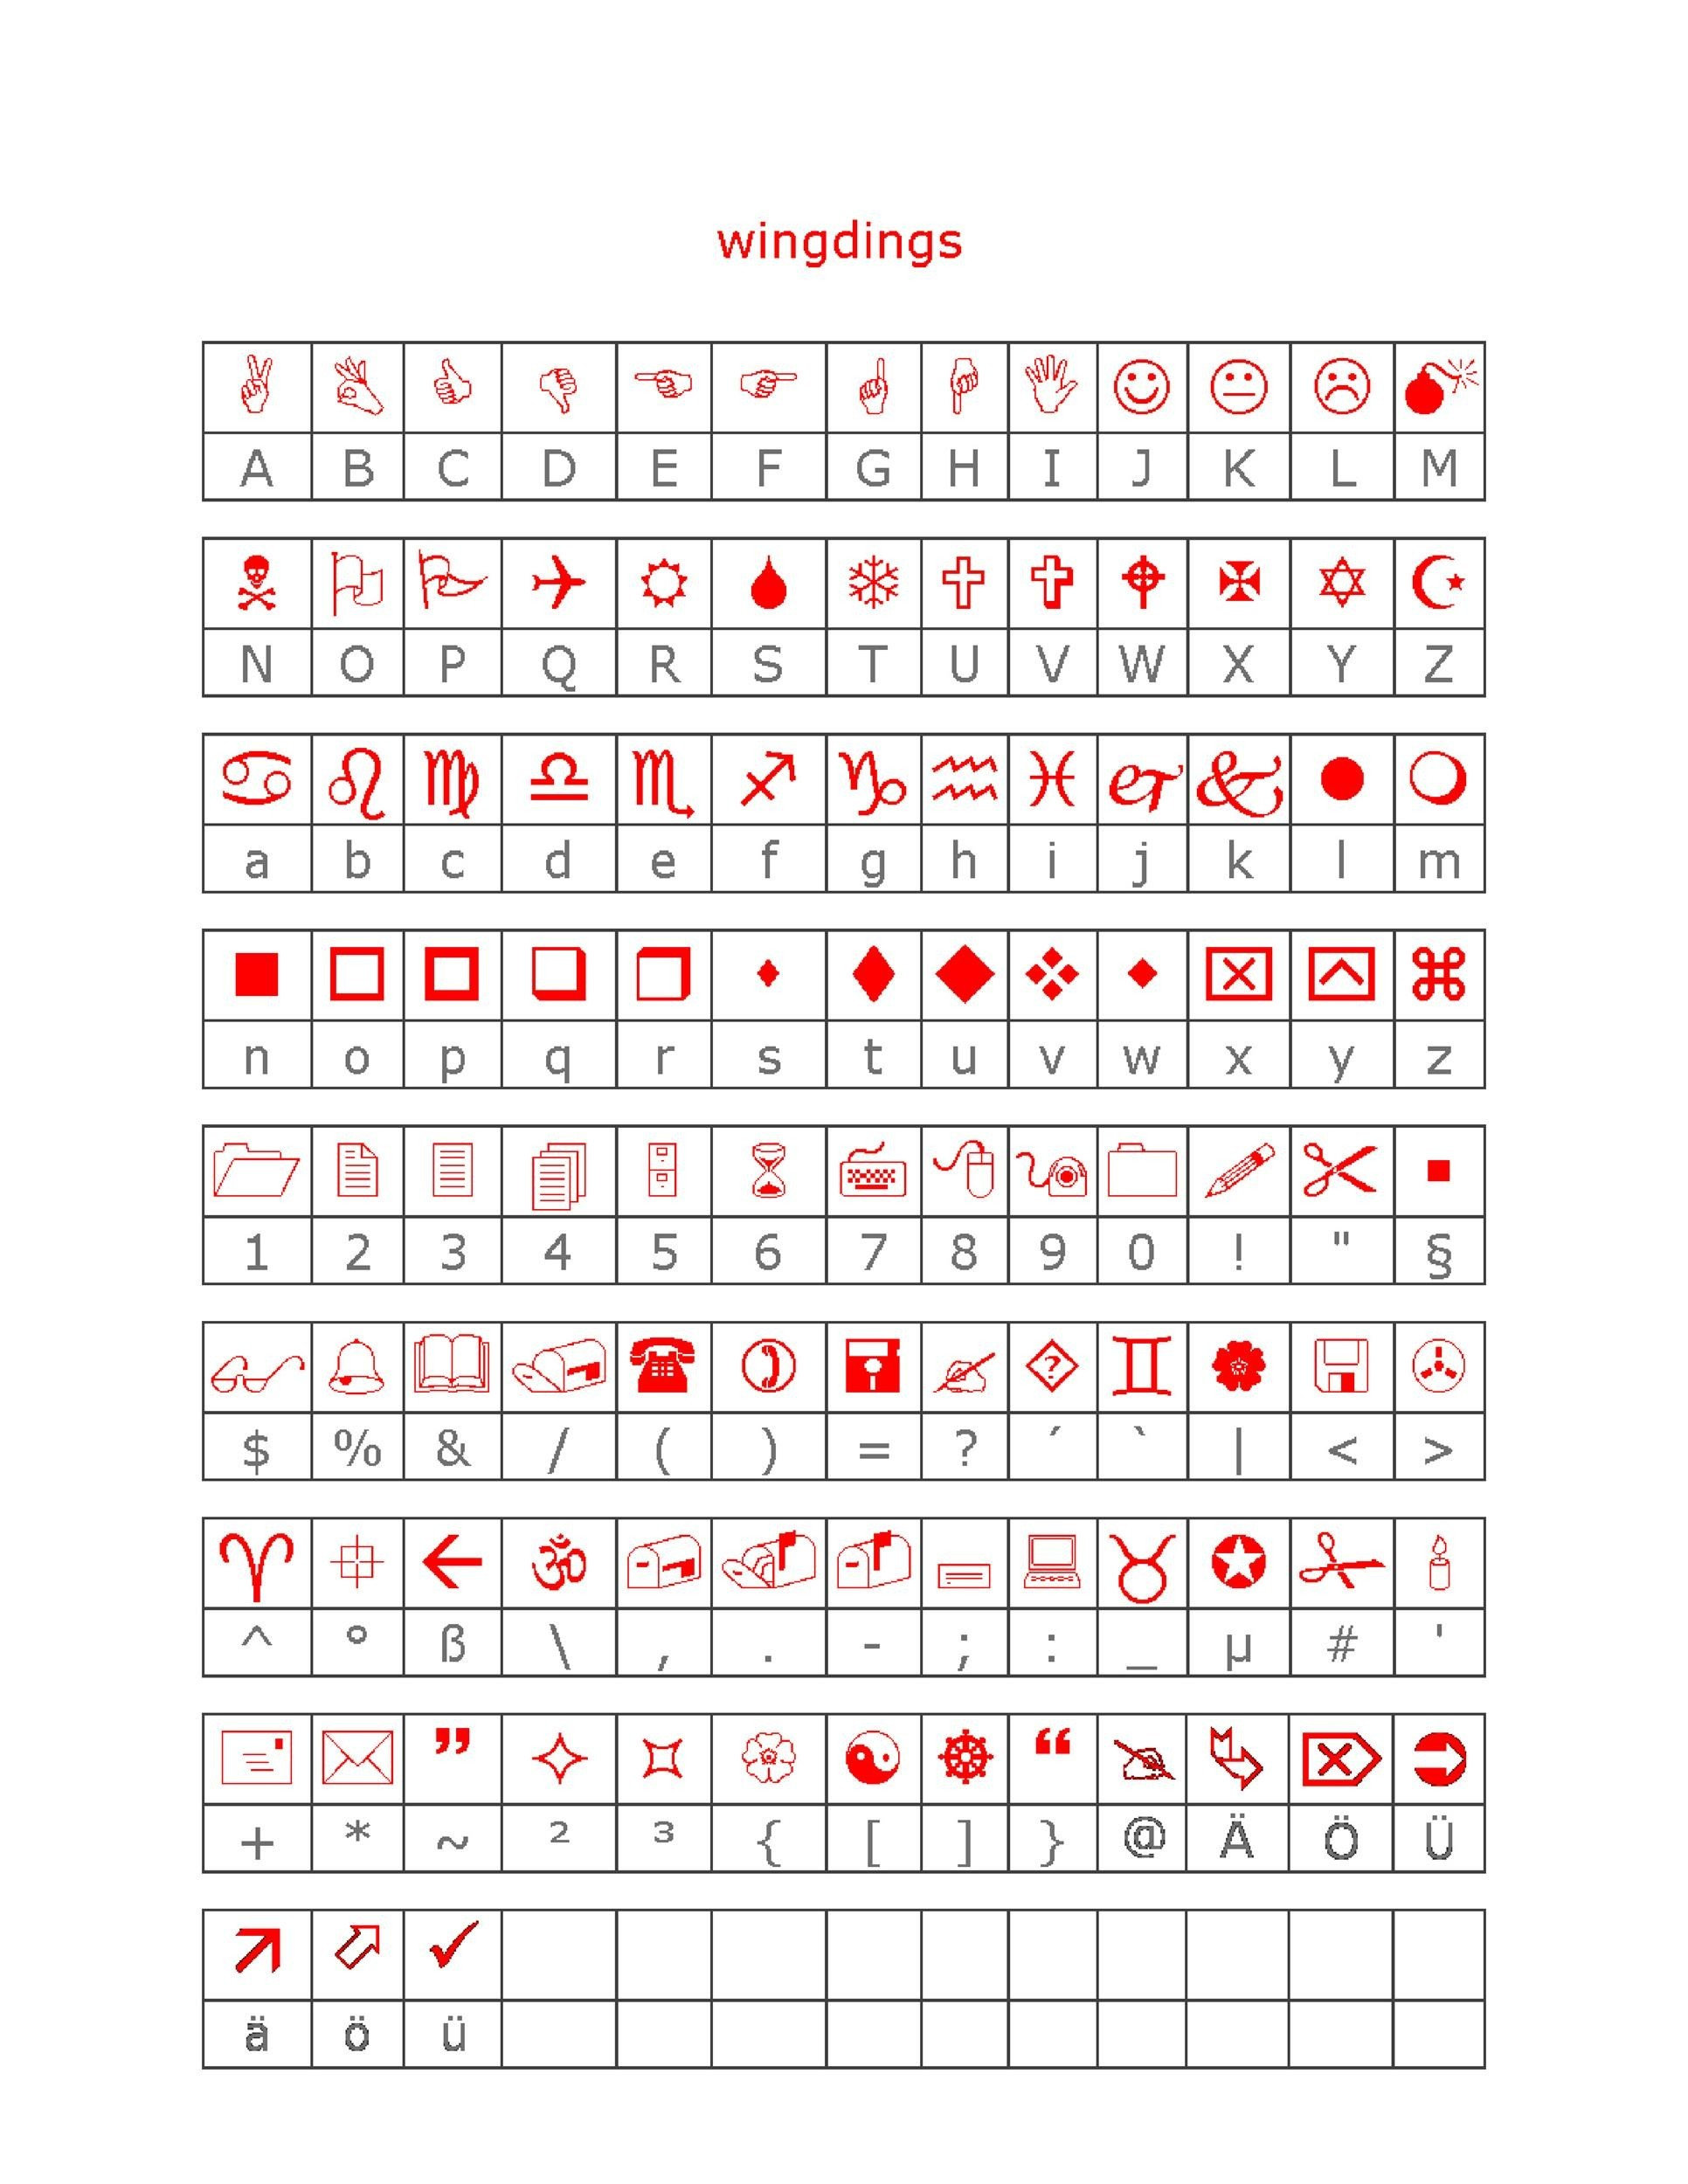 Free wingdings translator template 04